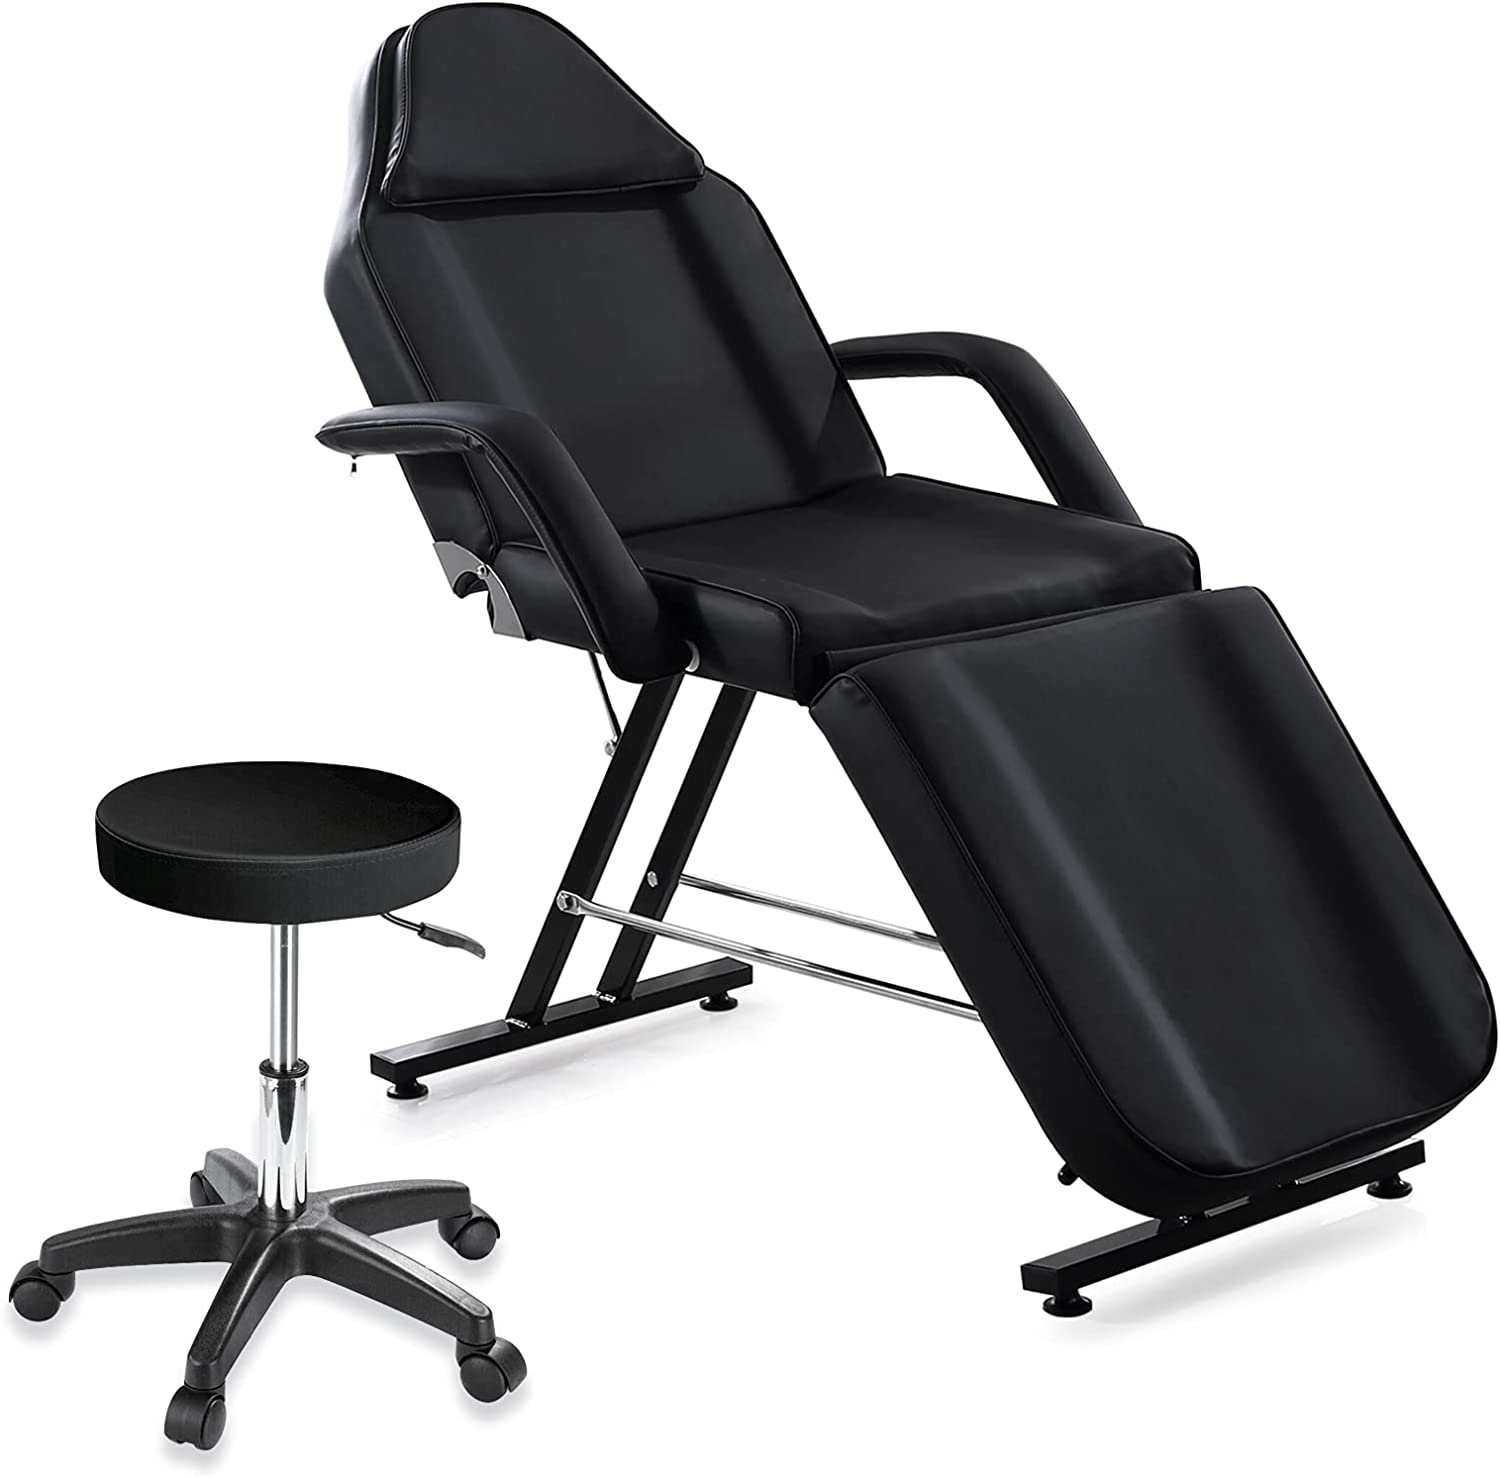 CIUTANG 出色 Facial Table Tattoo Chair Massage 使い勝手の良い for Beauty Bed Sal Spa